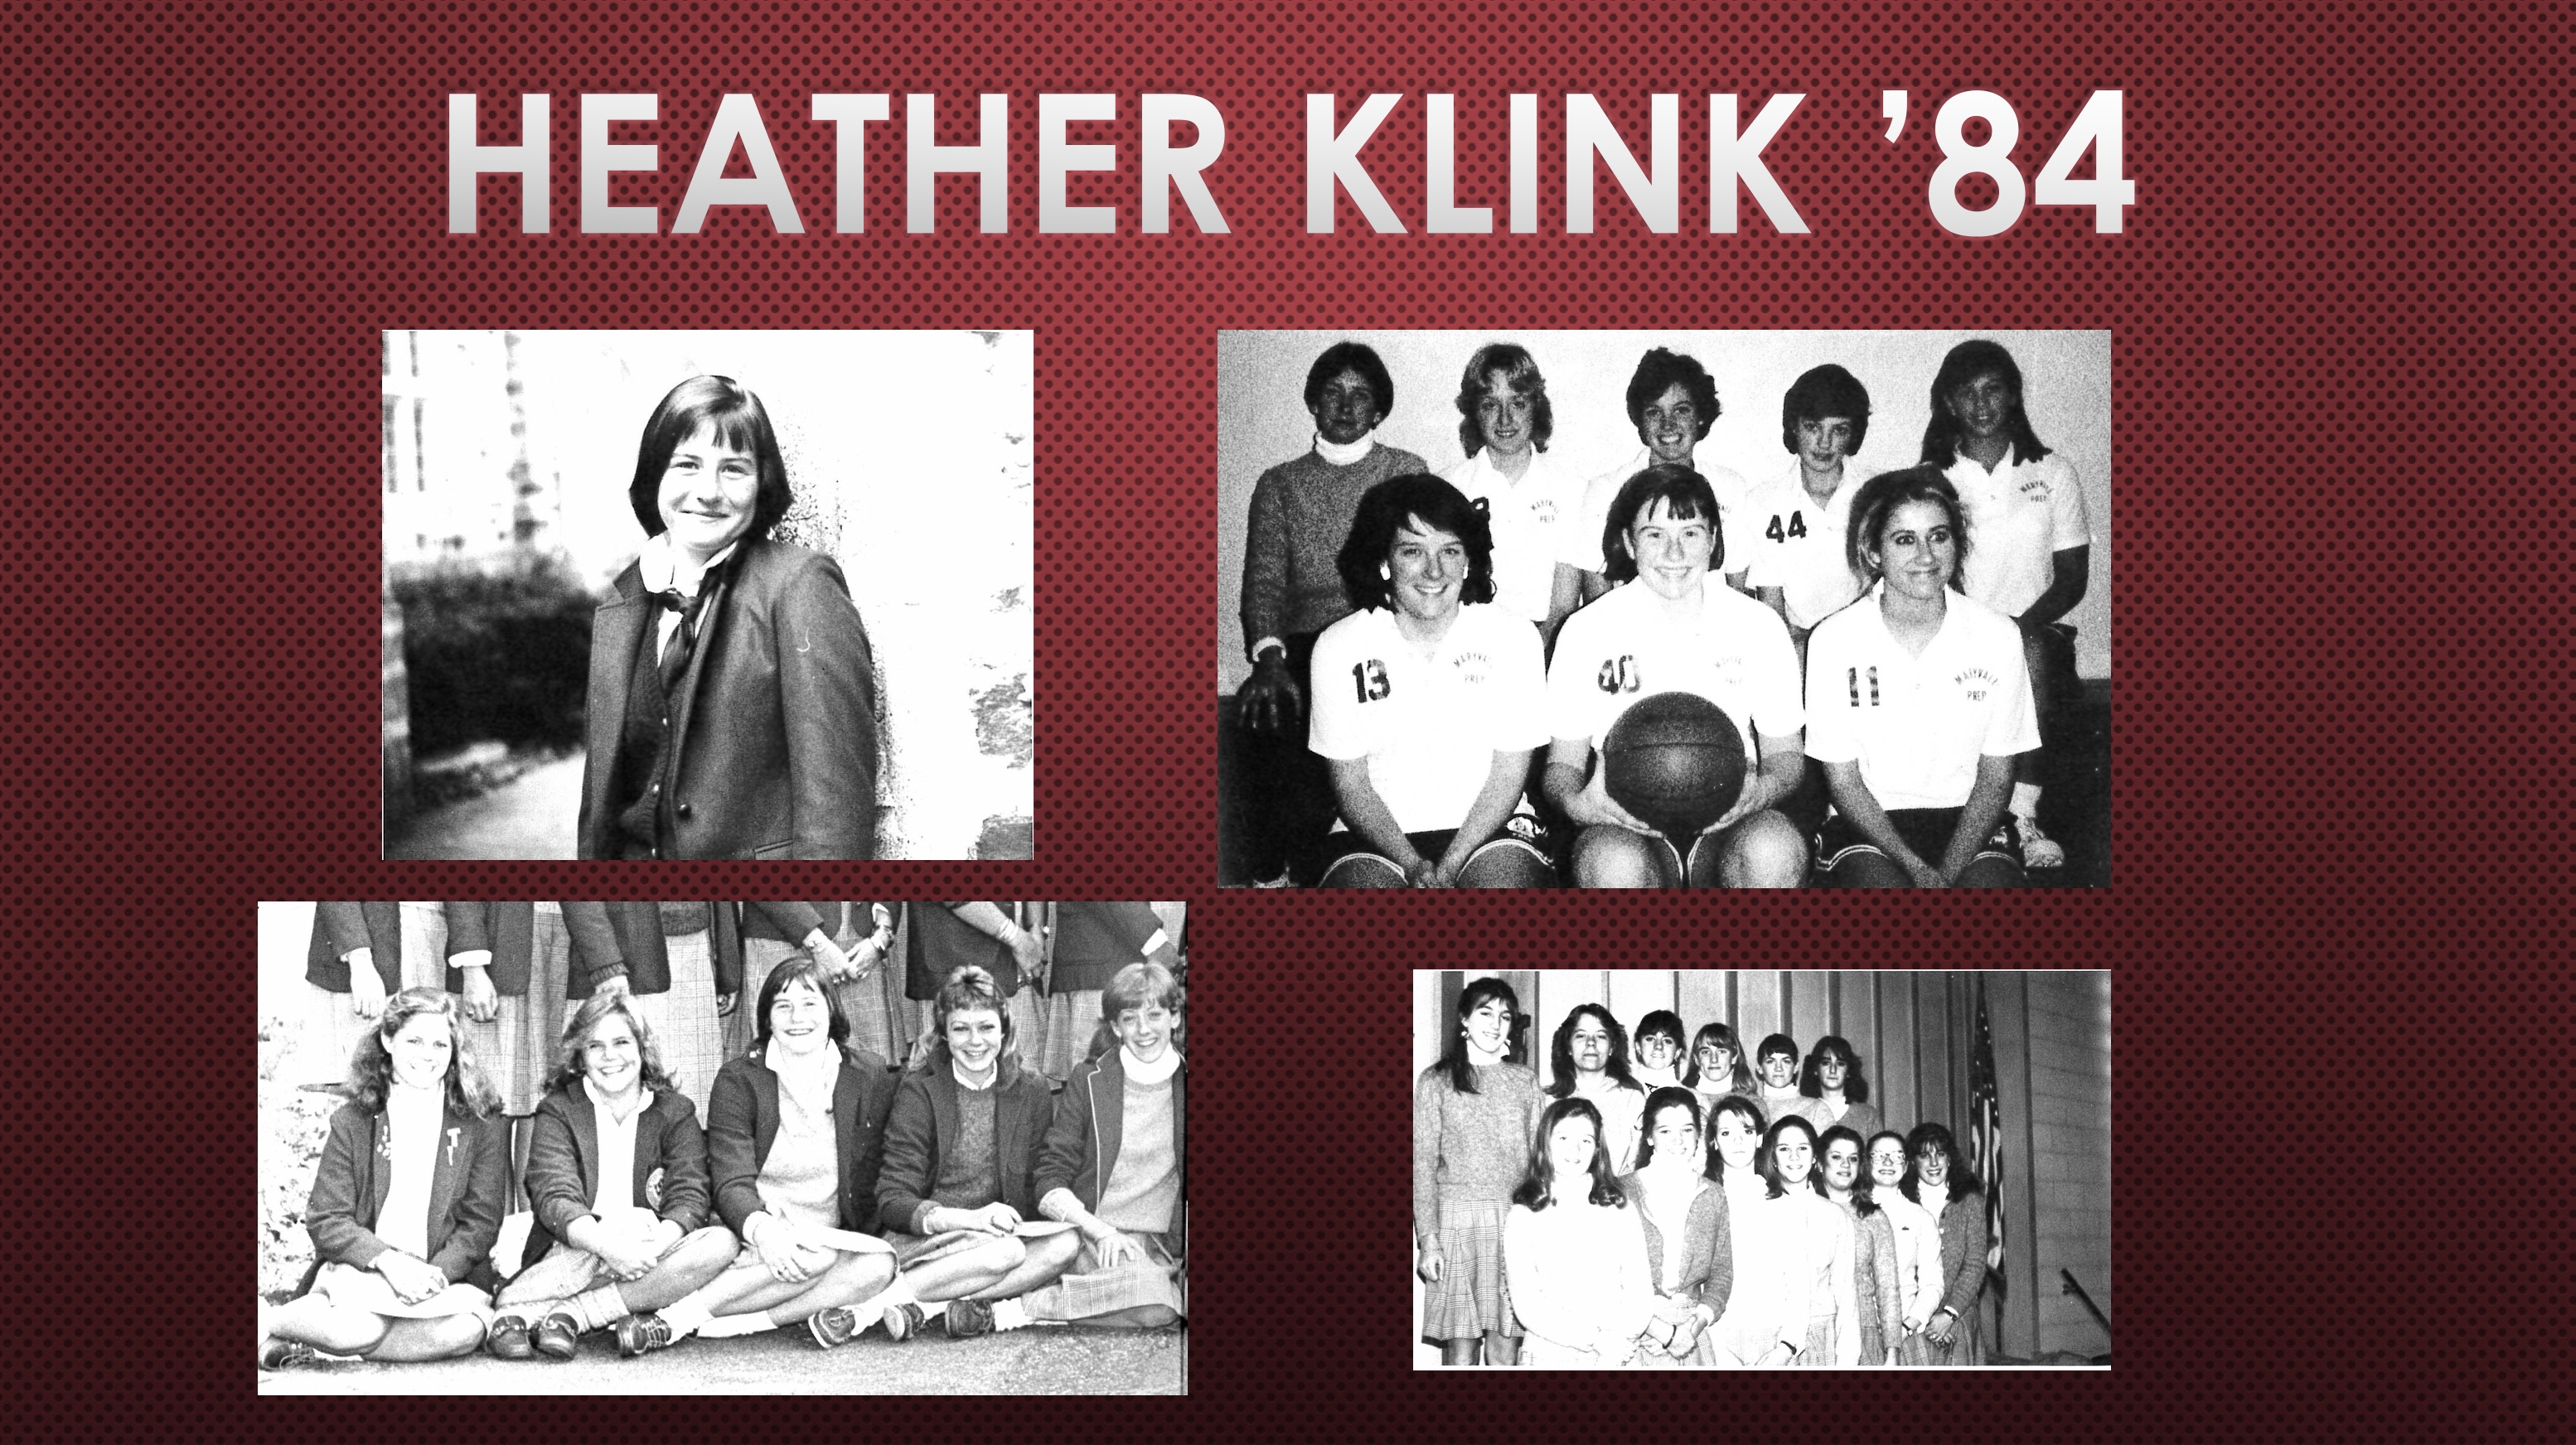 2018 Athletic Hall of Fame Inductee: Heather Klink '84